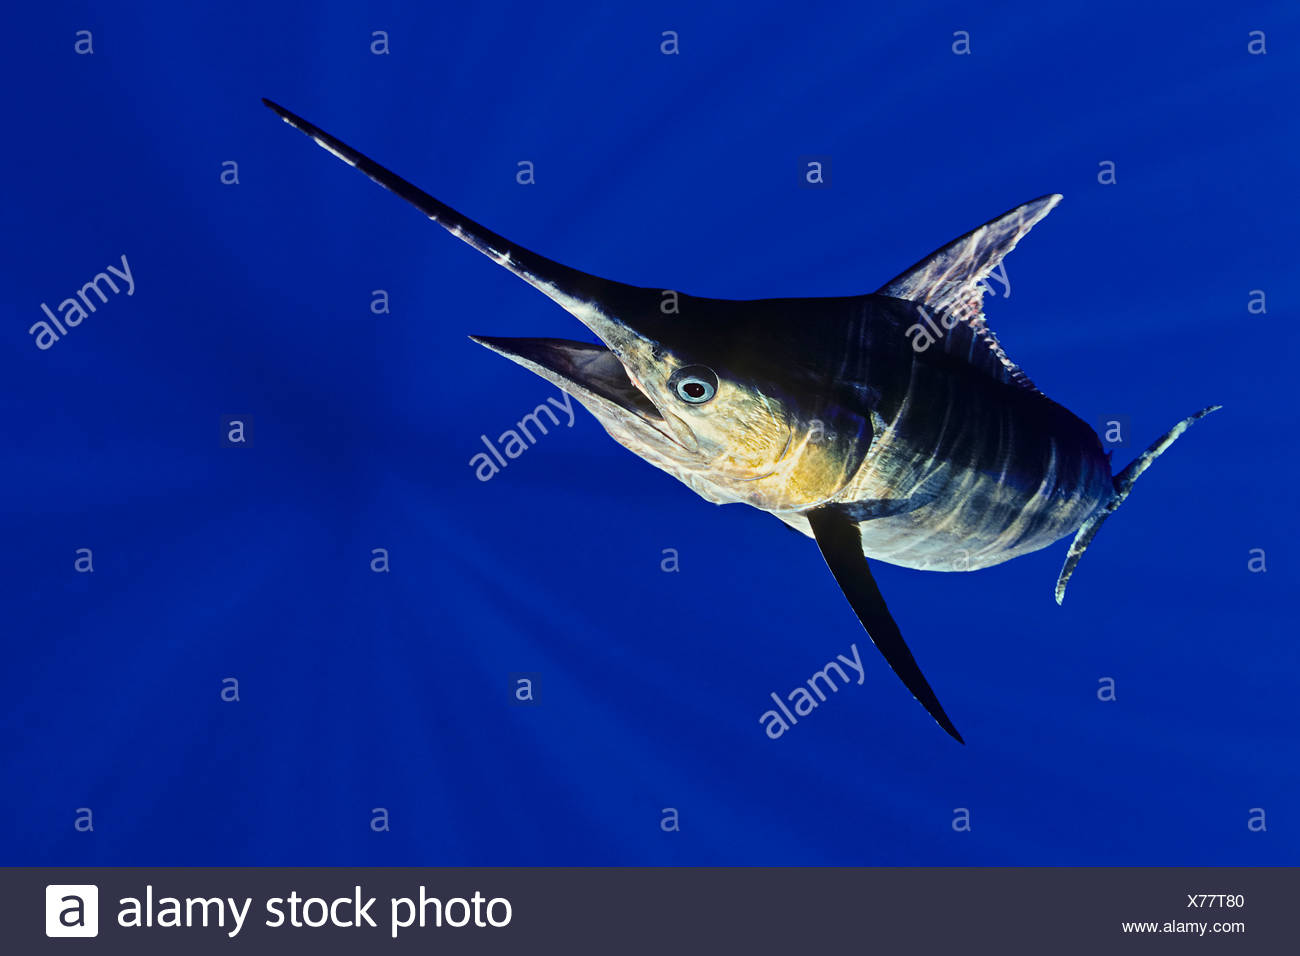 Blue Marlin, Makaira nigricans, Big Island, Hawaii, USA - Stock Image